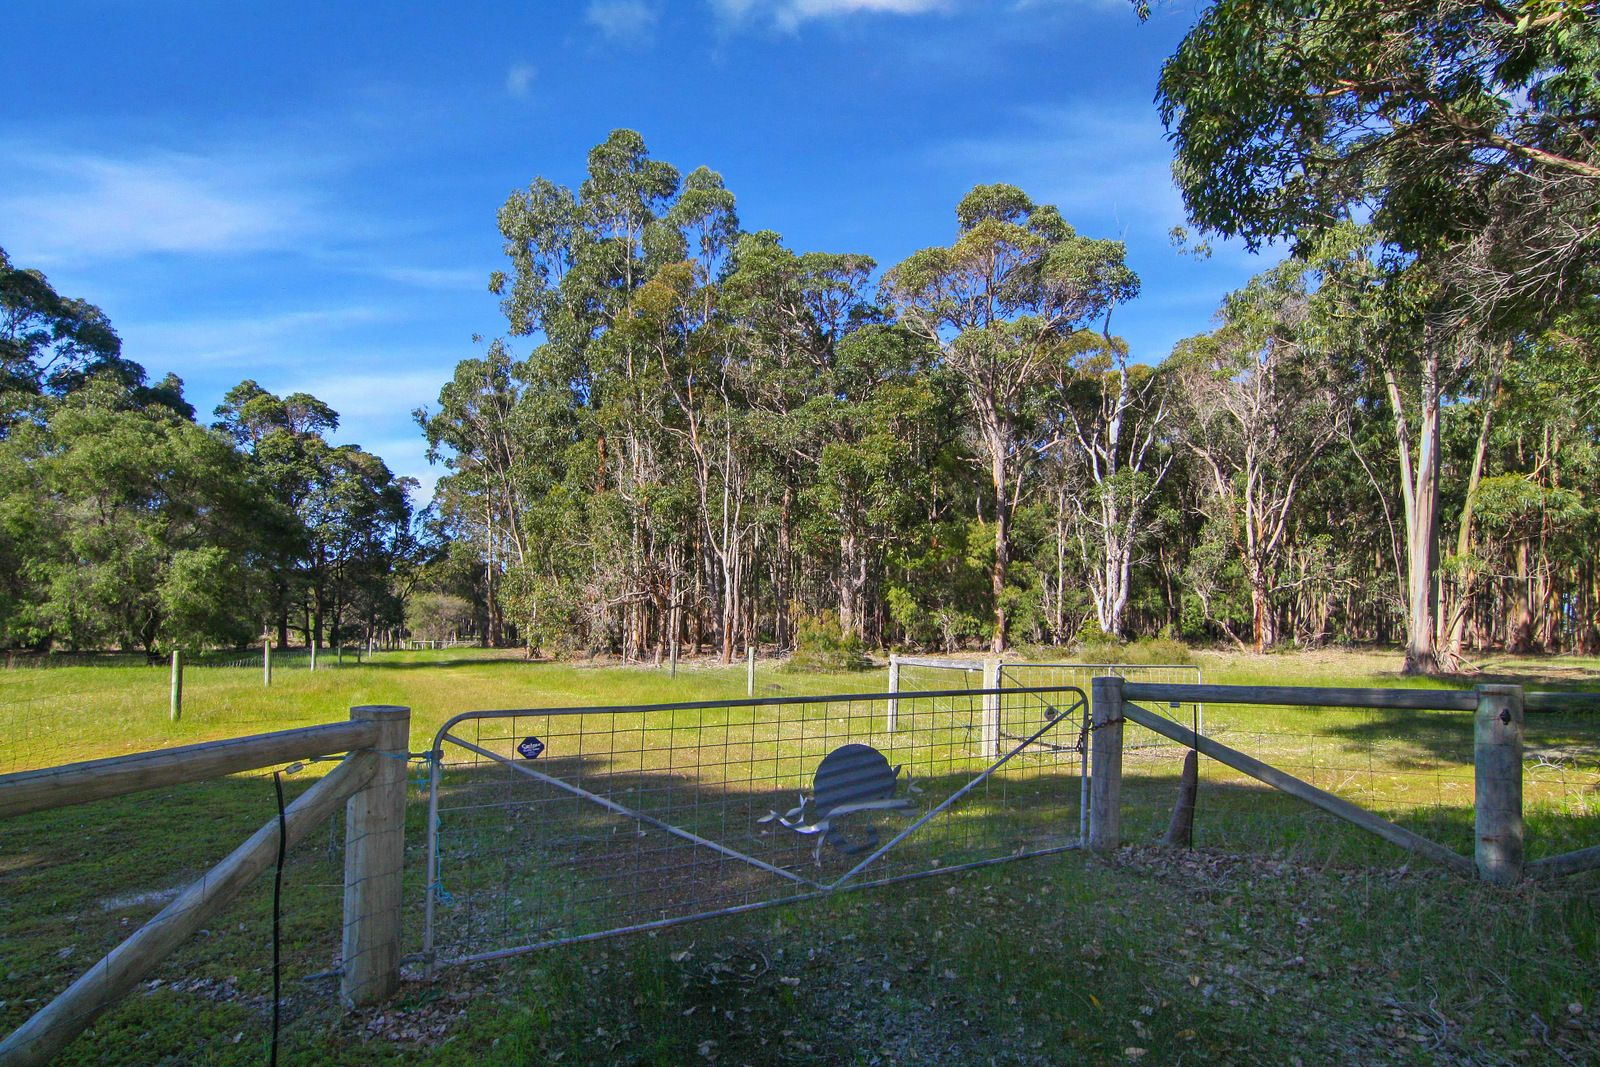 Lot 3070 Vansittart Road, Karridale WA 6288, Image 0